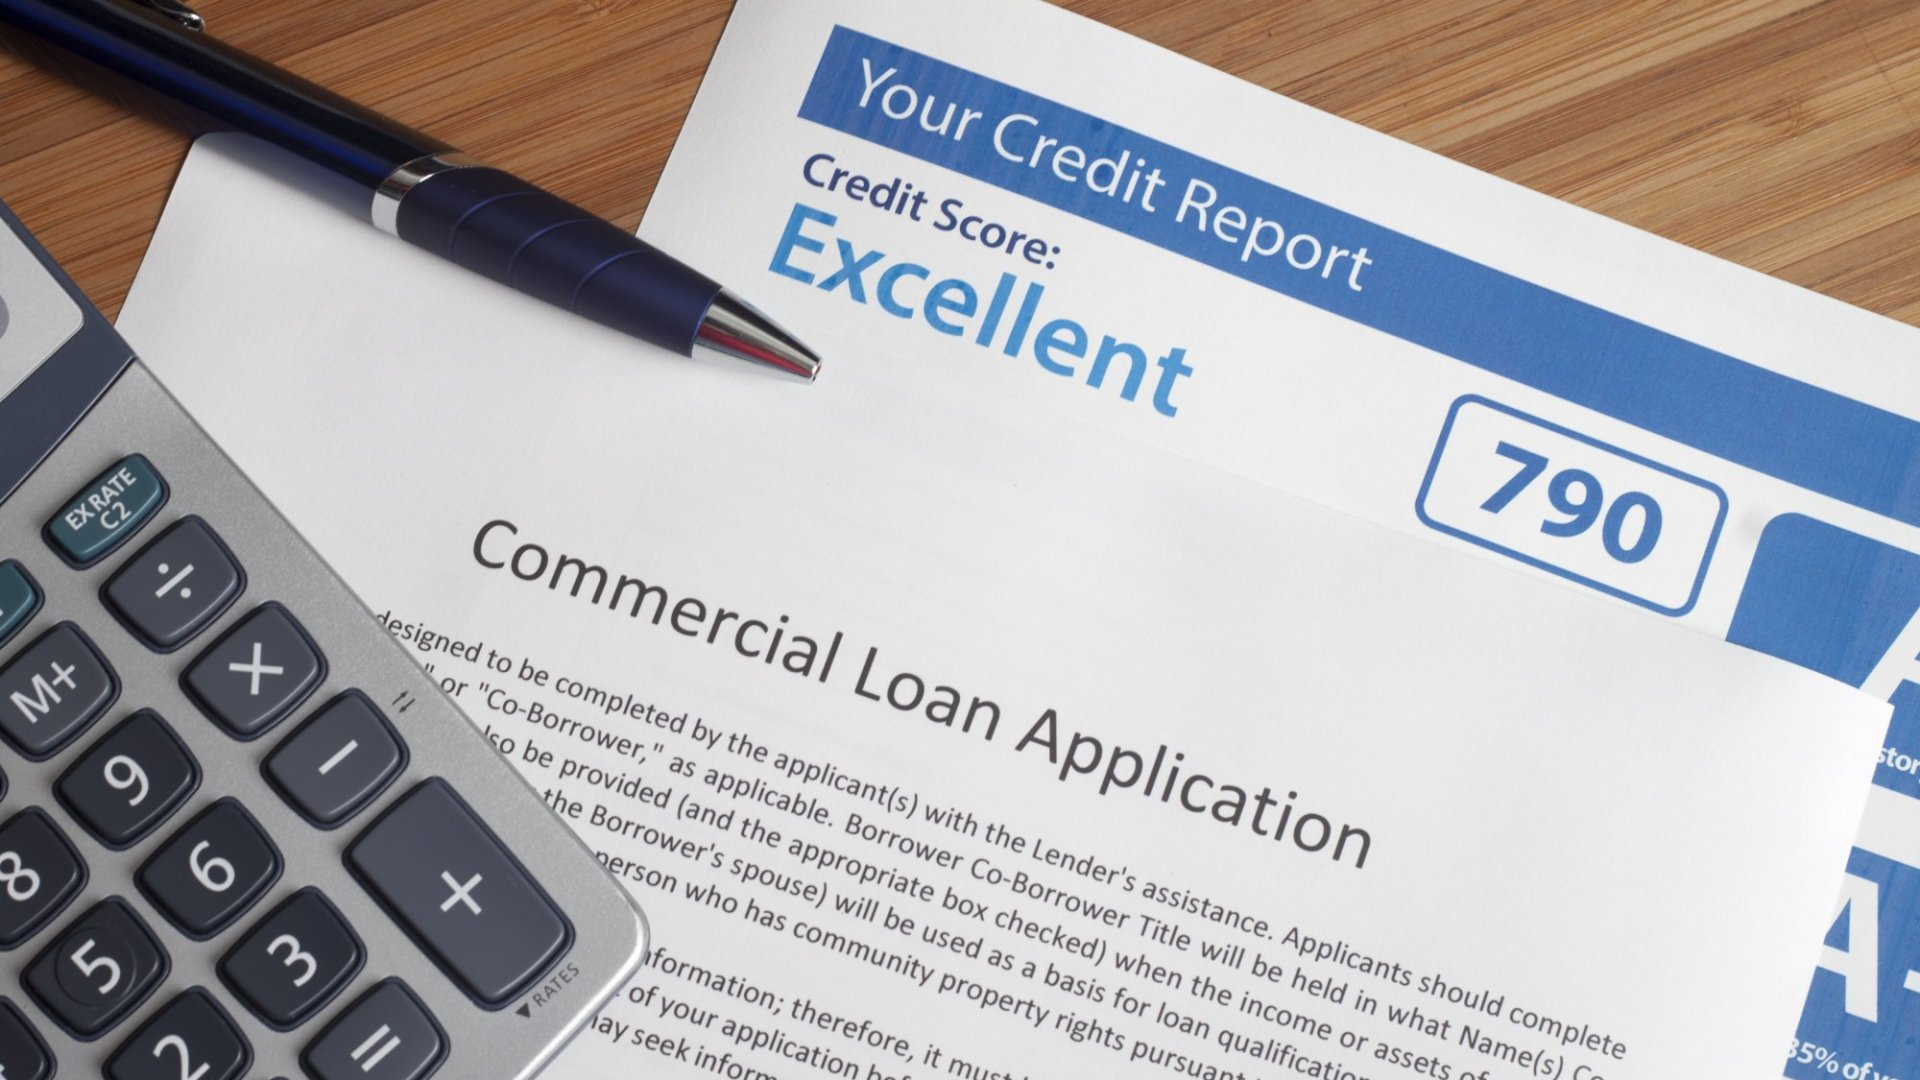 What Every Small Business Owner Should Know About Their Business Credit